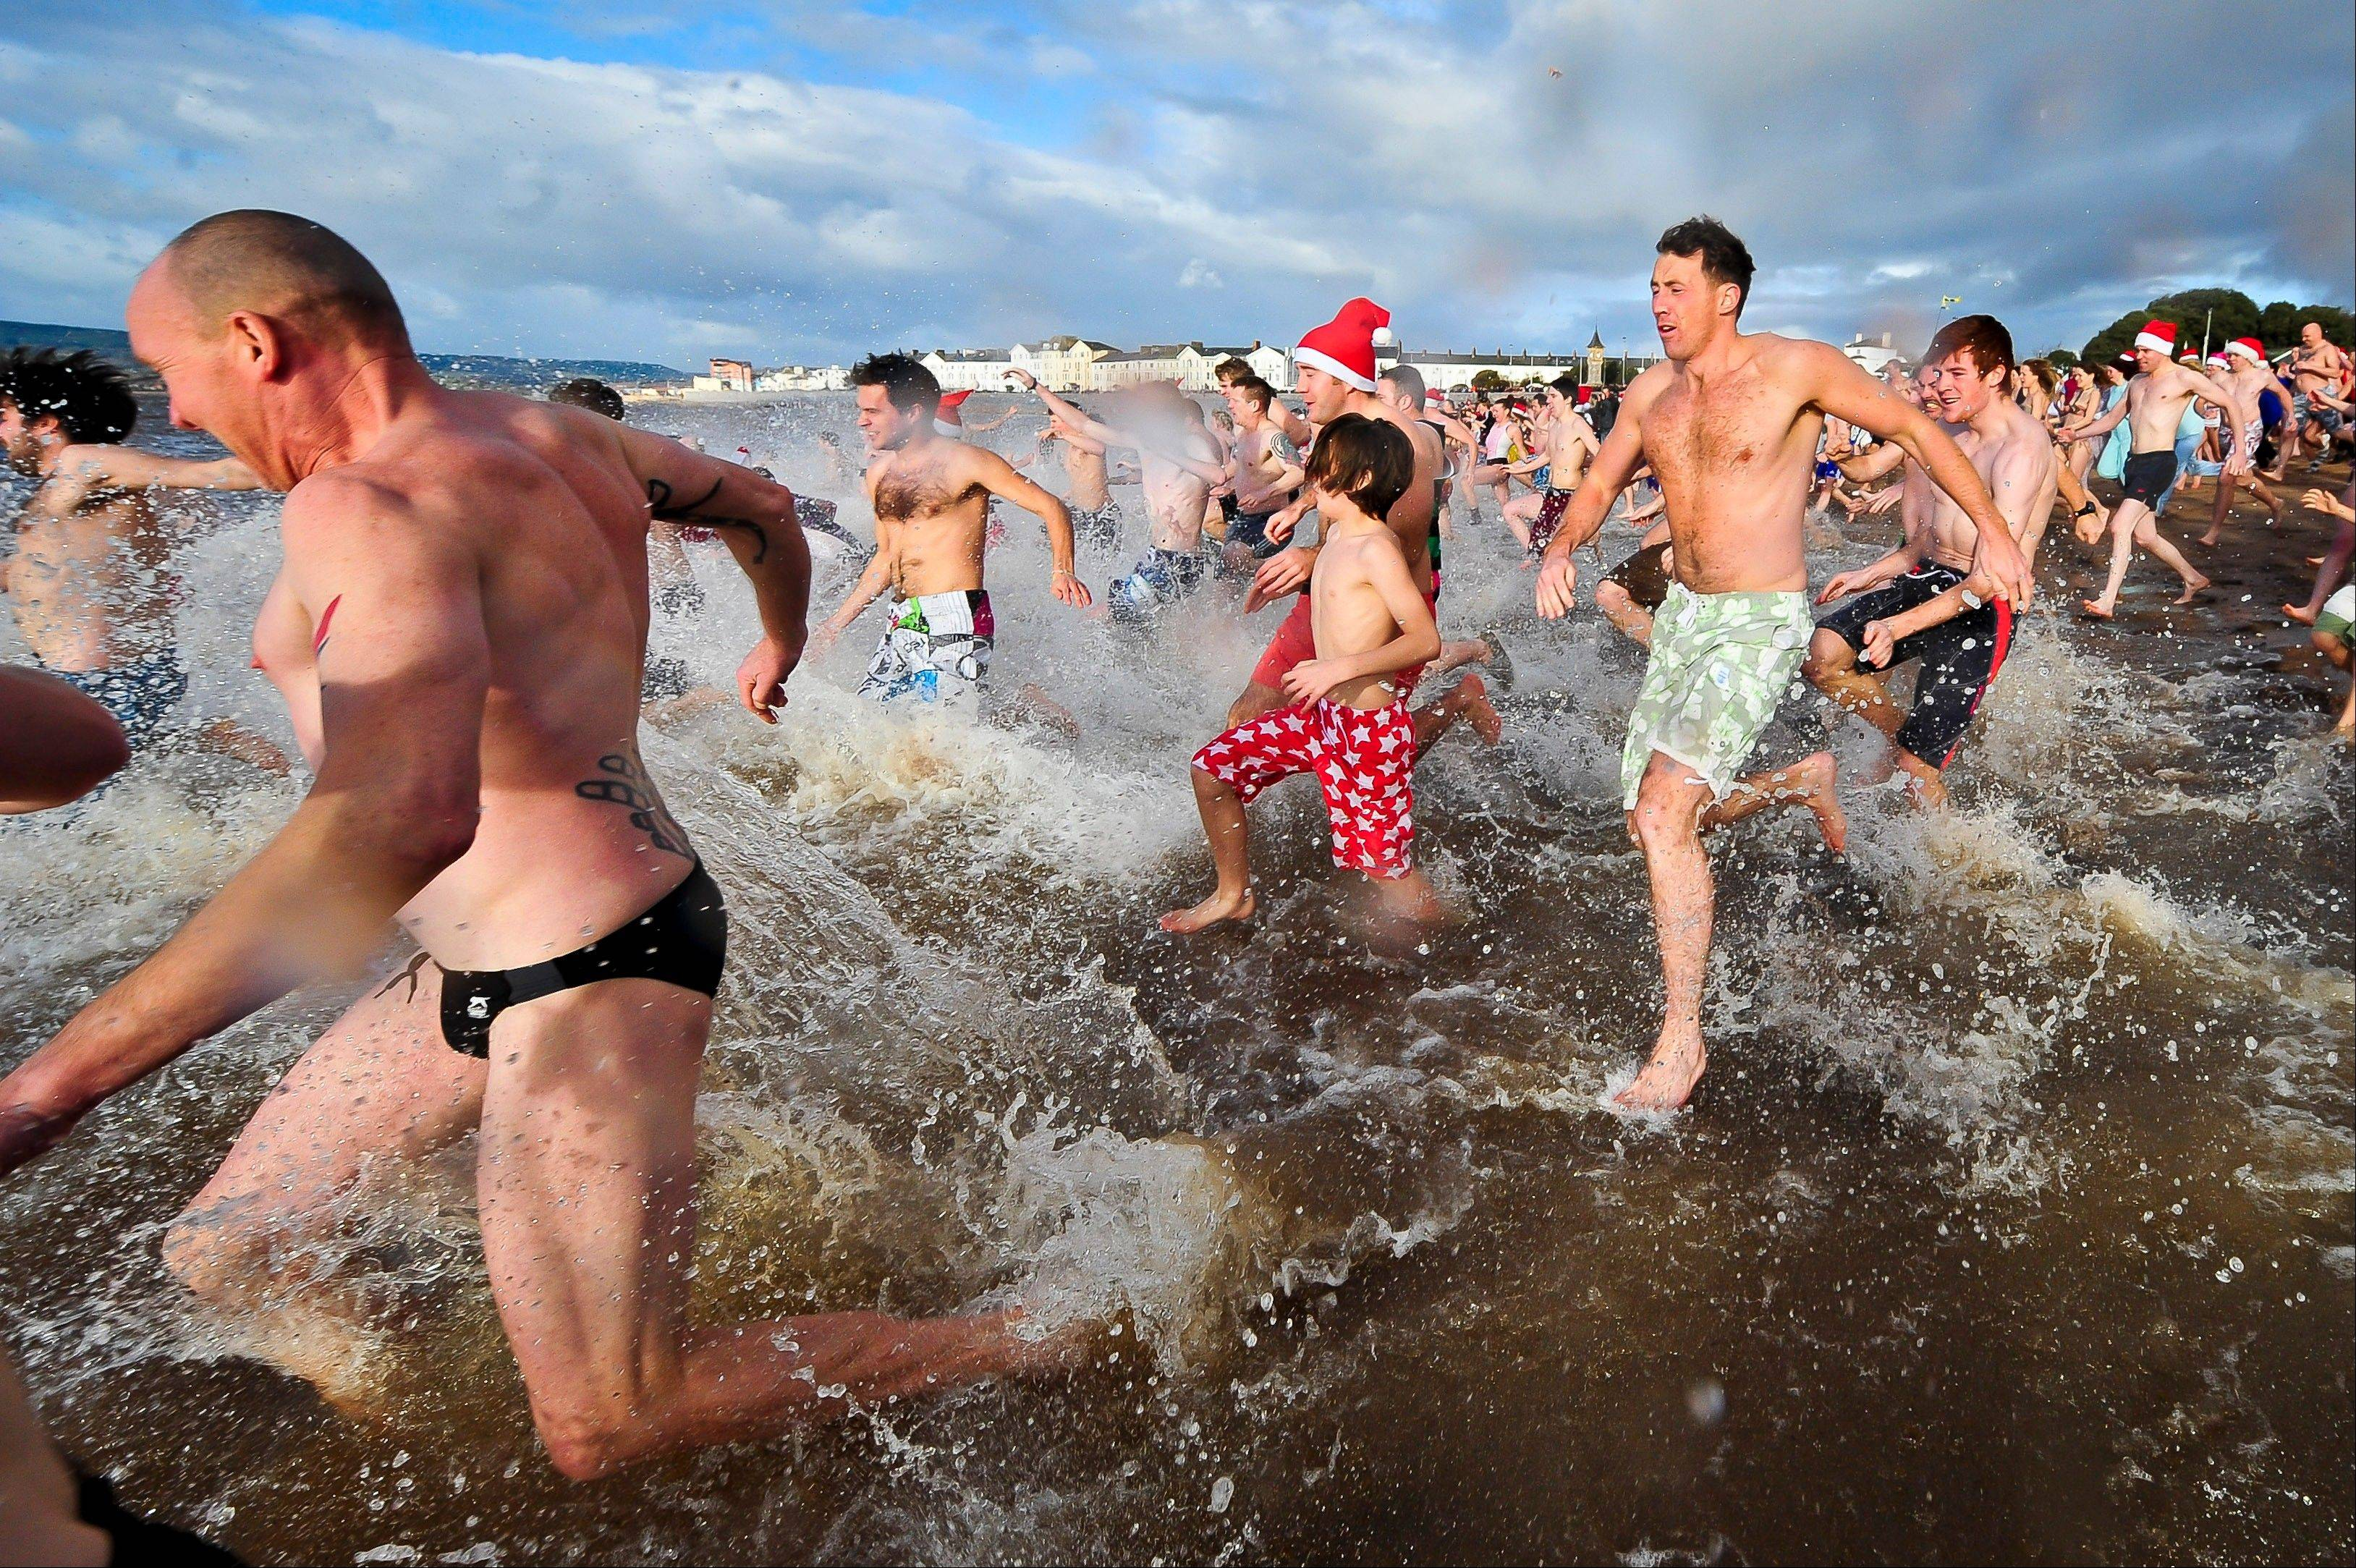 Swimmers take to the sea at Exmouth, south western England, for the annual Christmas Day swim, Tuesday Dec. 25, 2012.